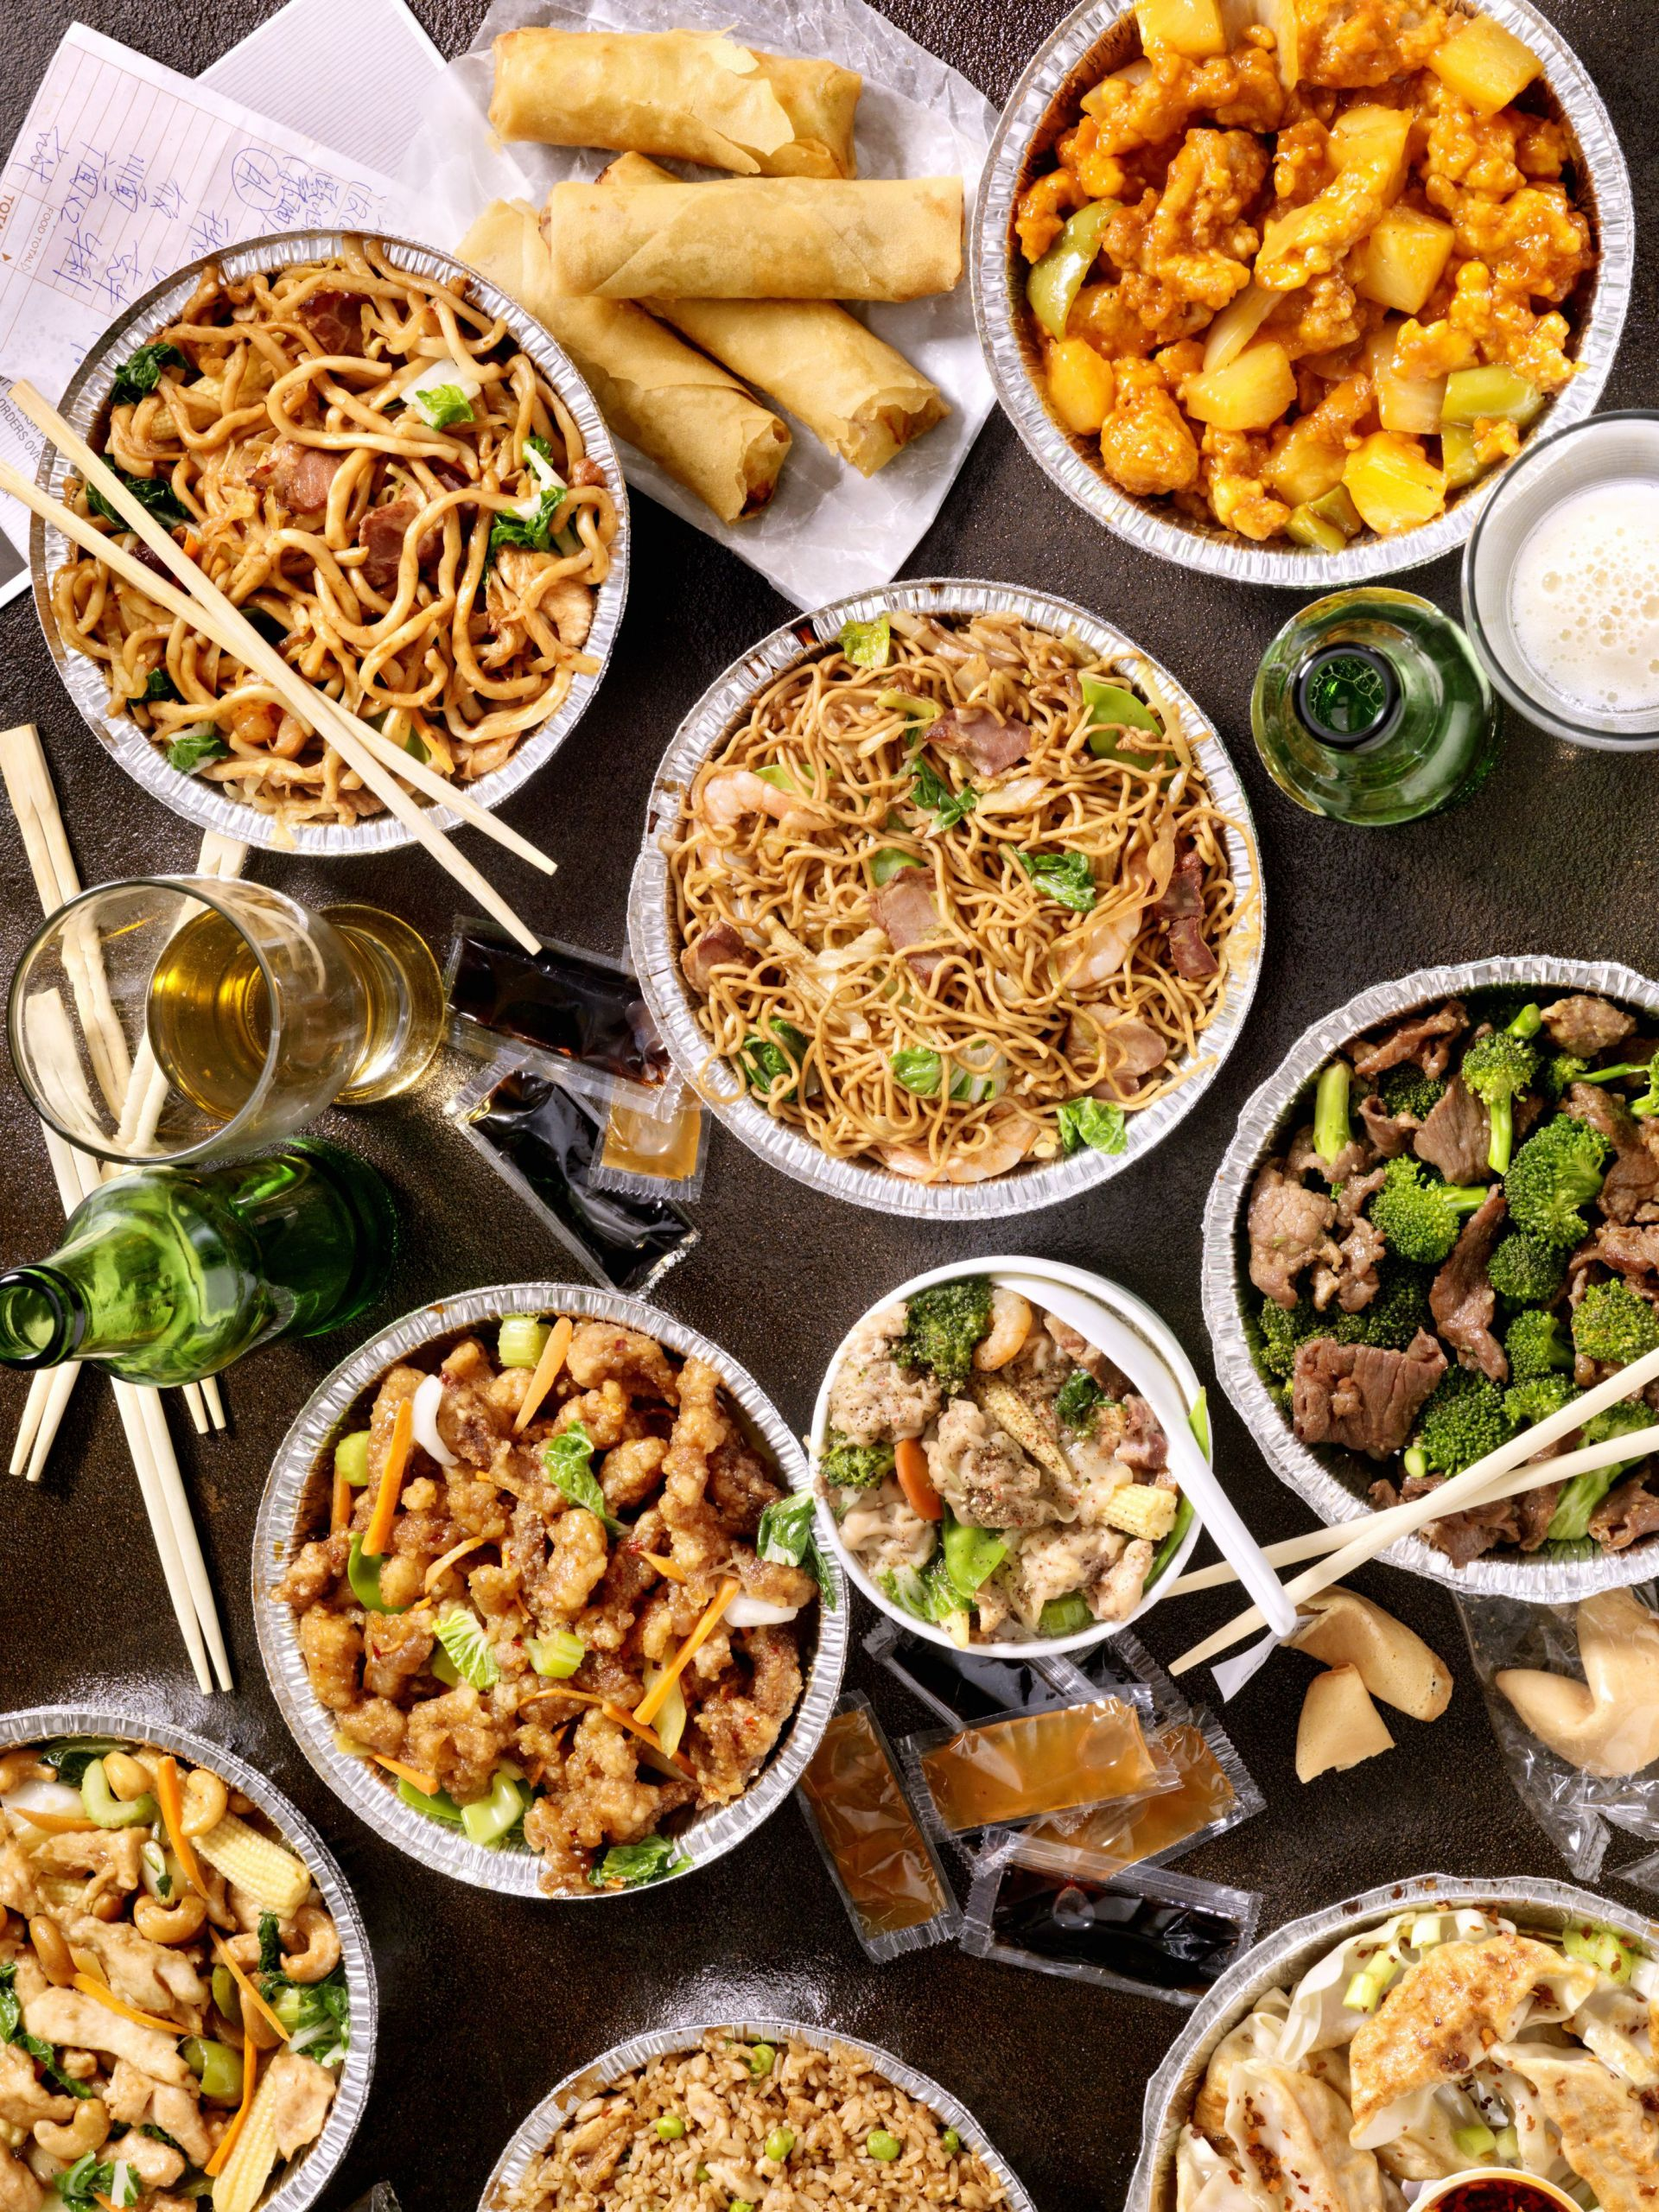 Chinese Foods Recipes With Pictures  Best Chinese Food Recipes To Cook at Home